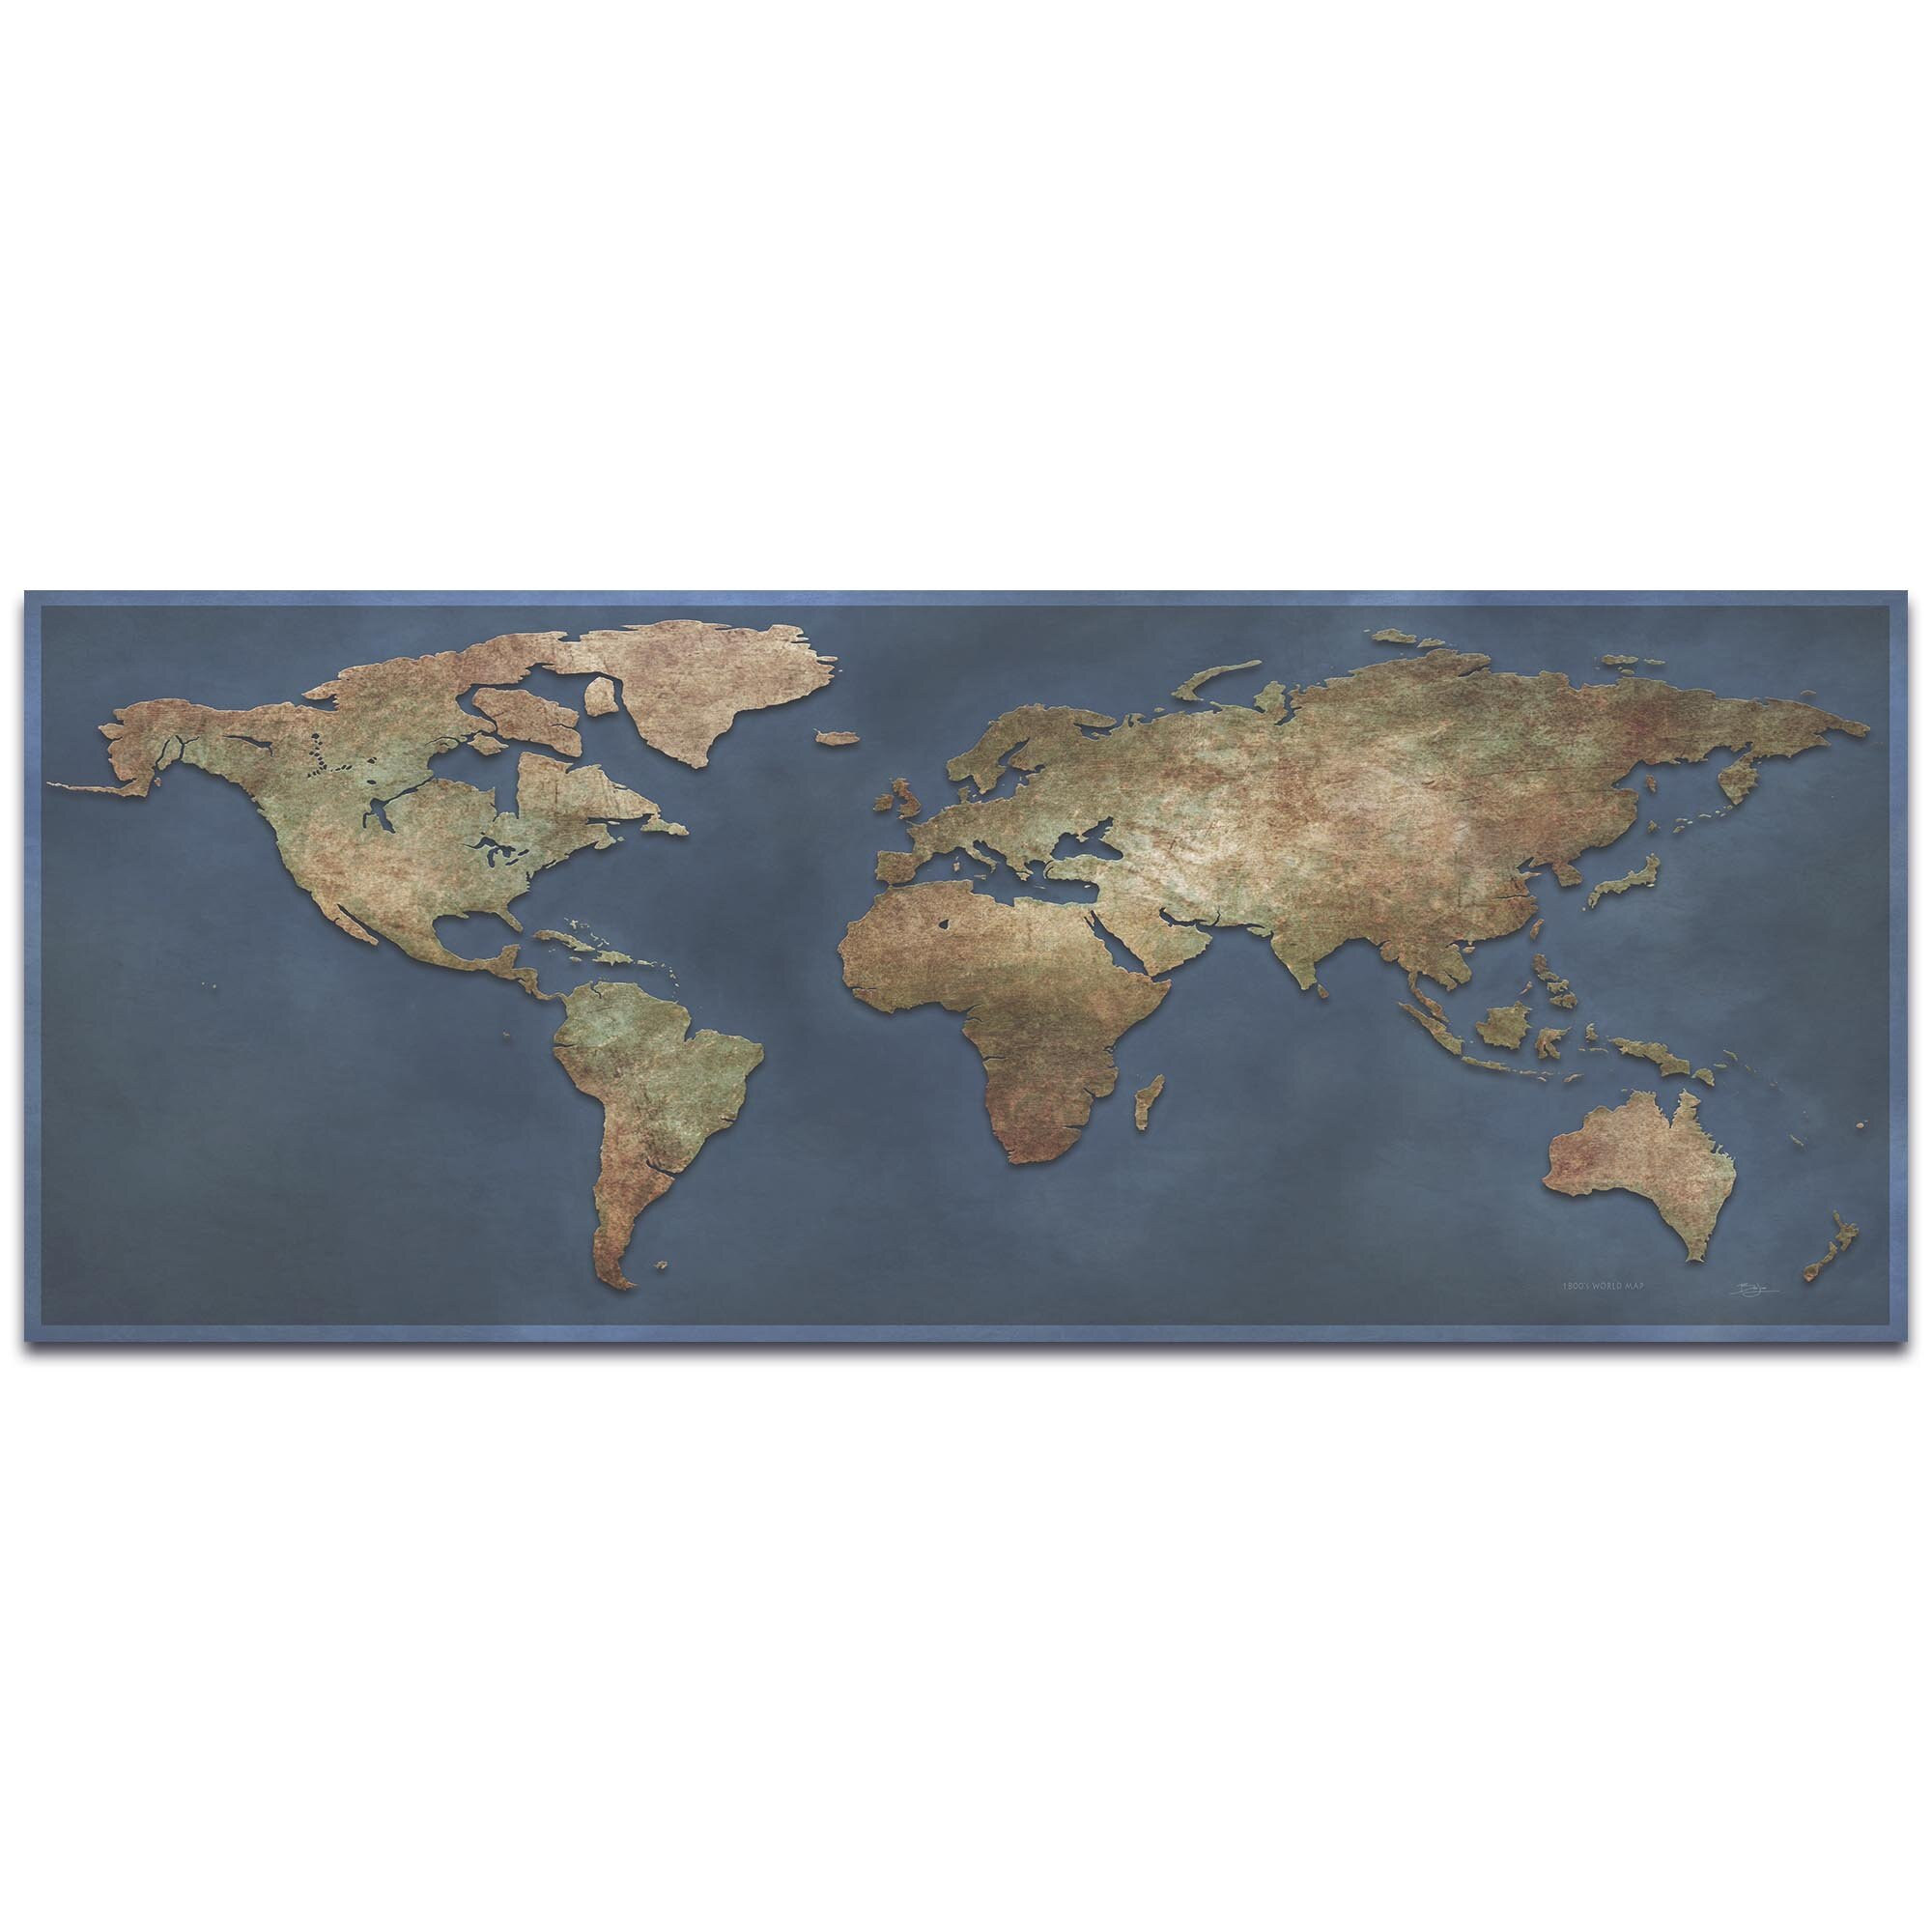 World Map Poster Contemporary Black /& Grey Style  Satin Matt Laminated New